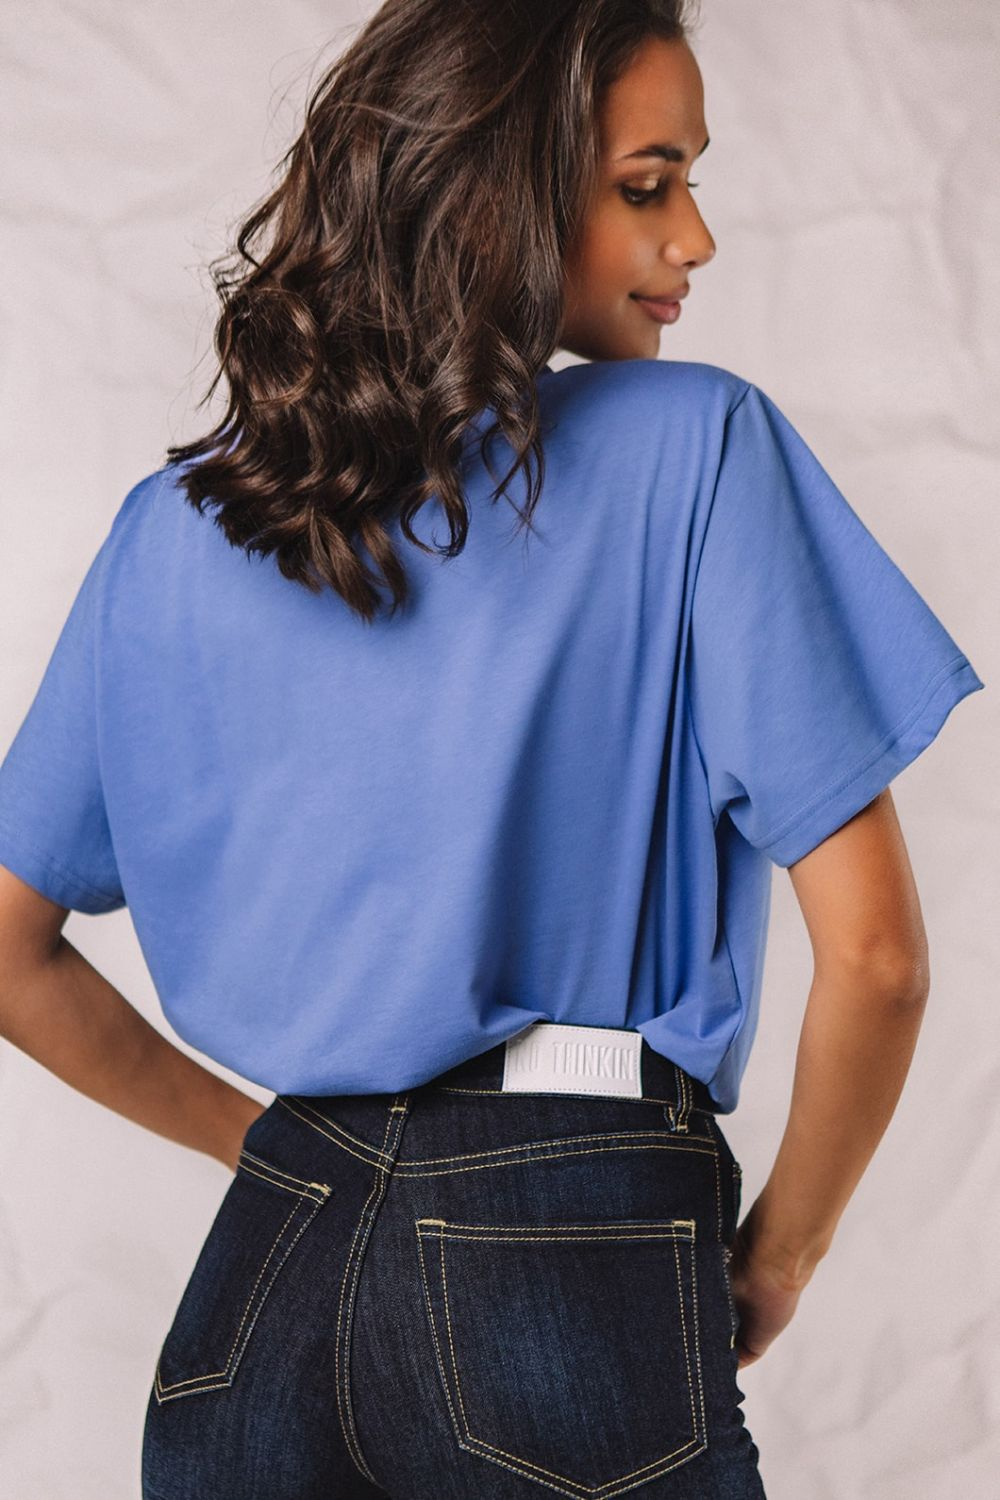 The Authentic blue top